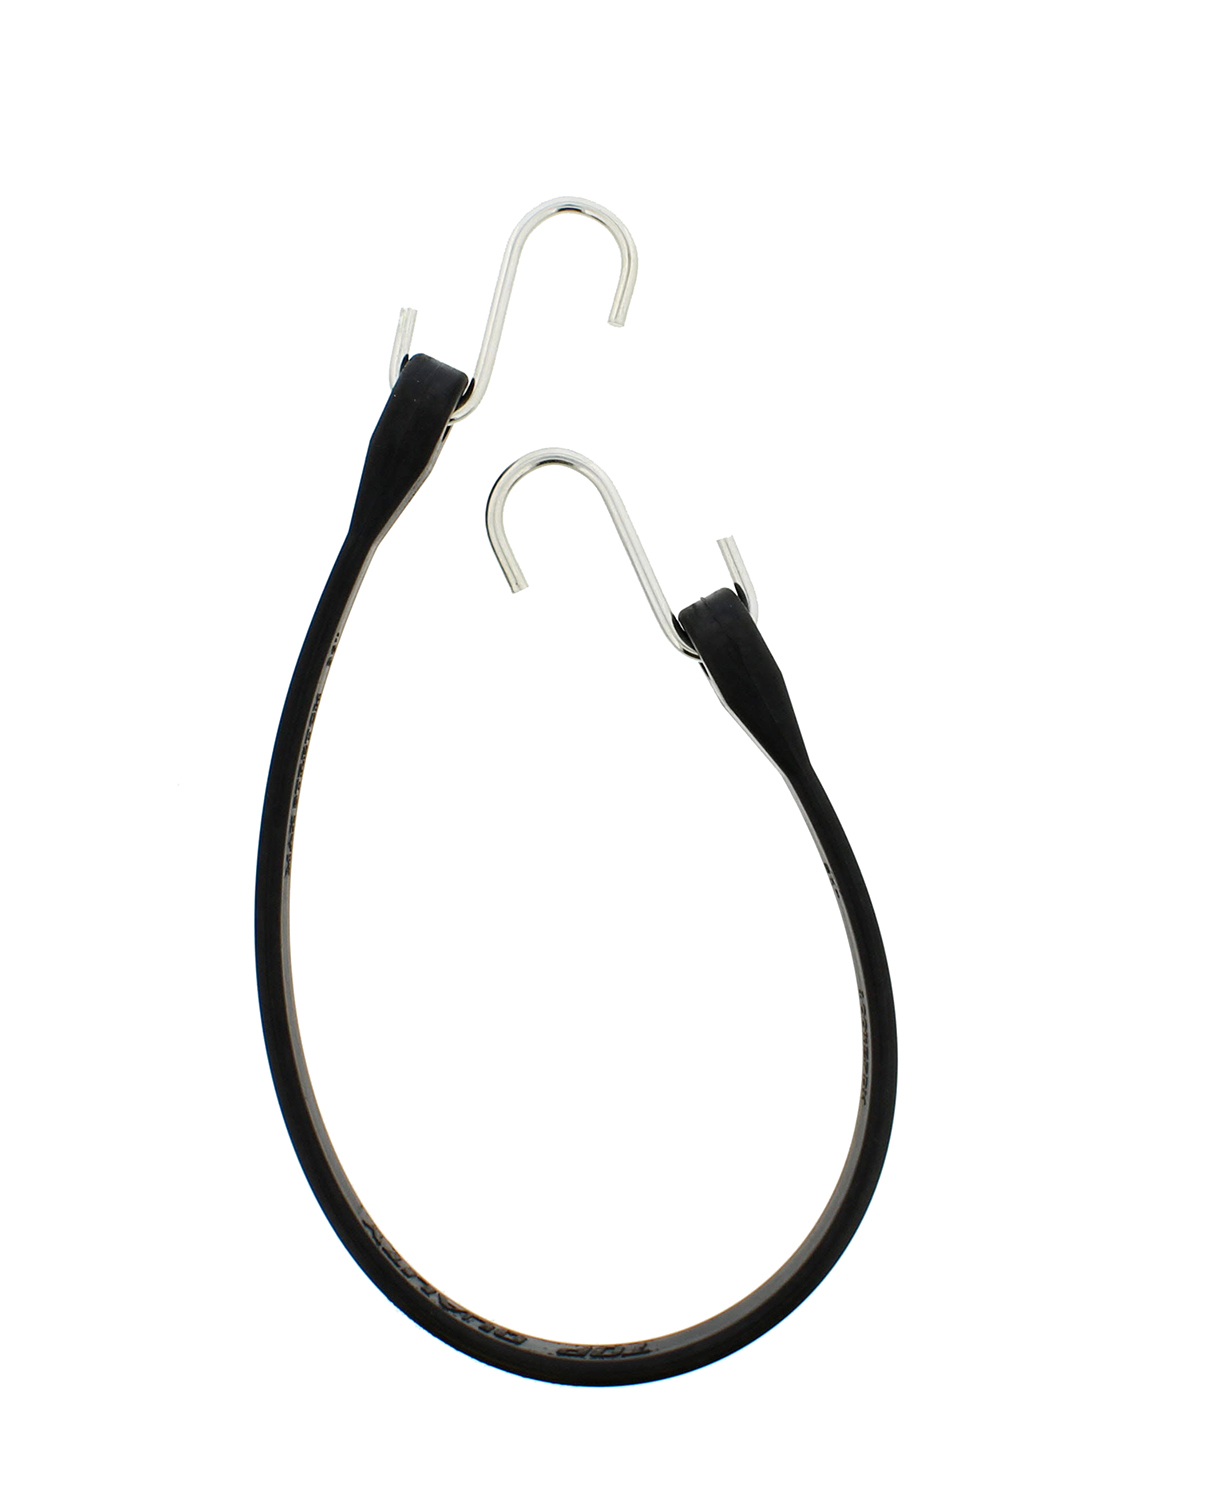 ABN-EPDM-Rubber-Tie-Down-Straps-with-Hooks-Black-Rubber-Bungee-Cords-10Pk miniature 27